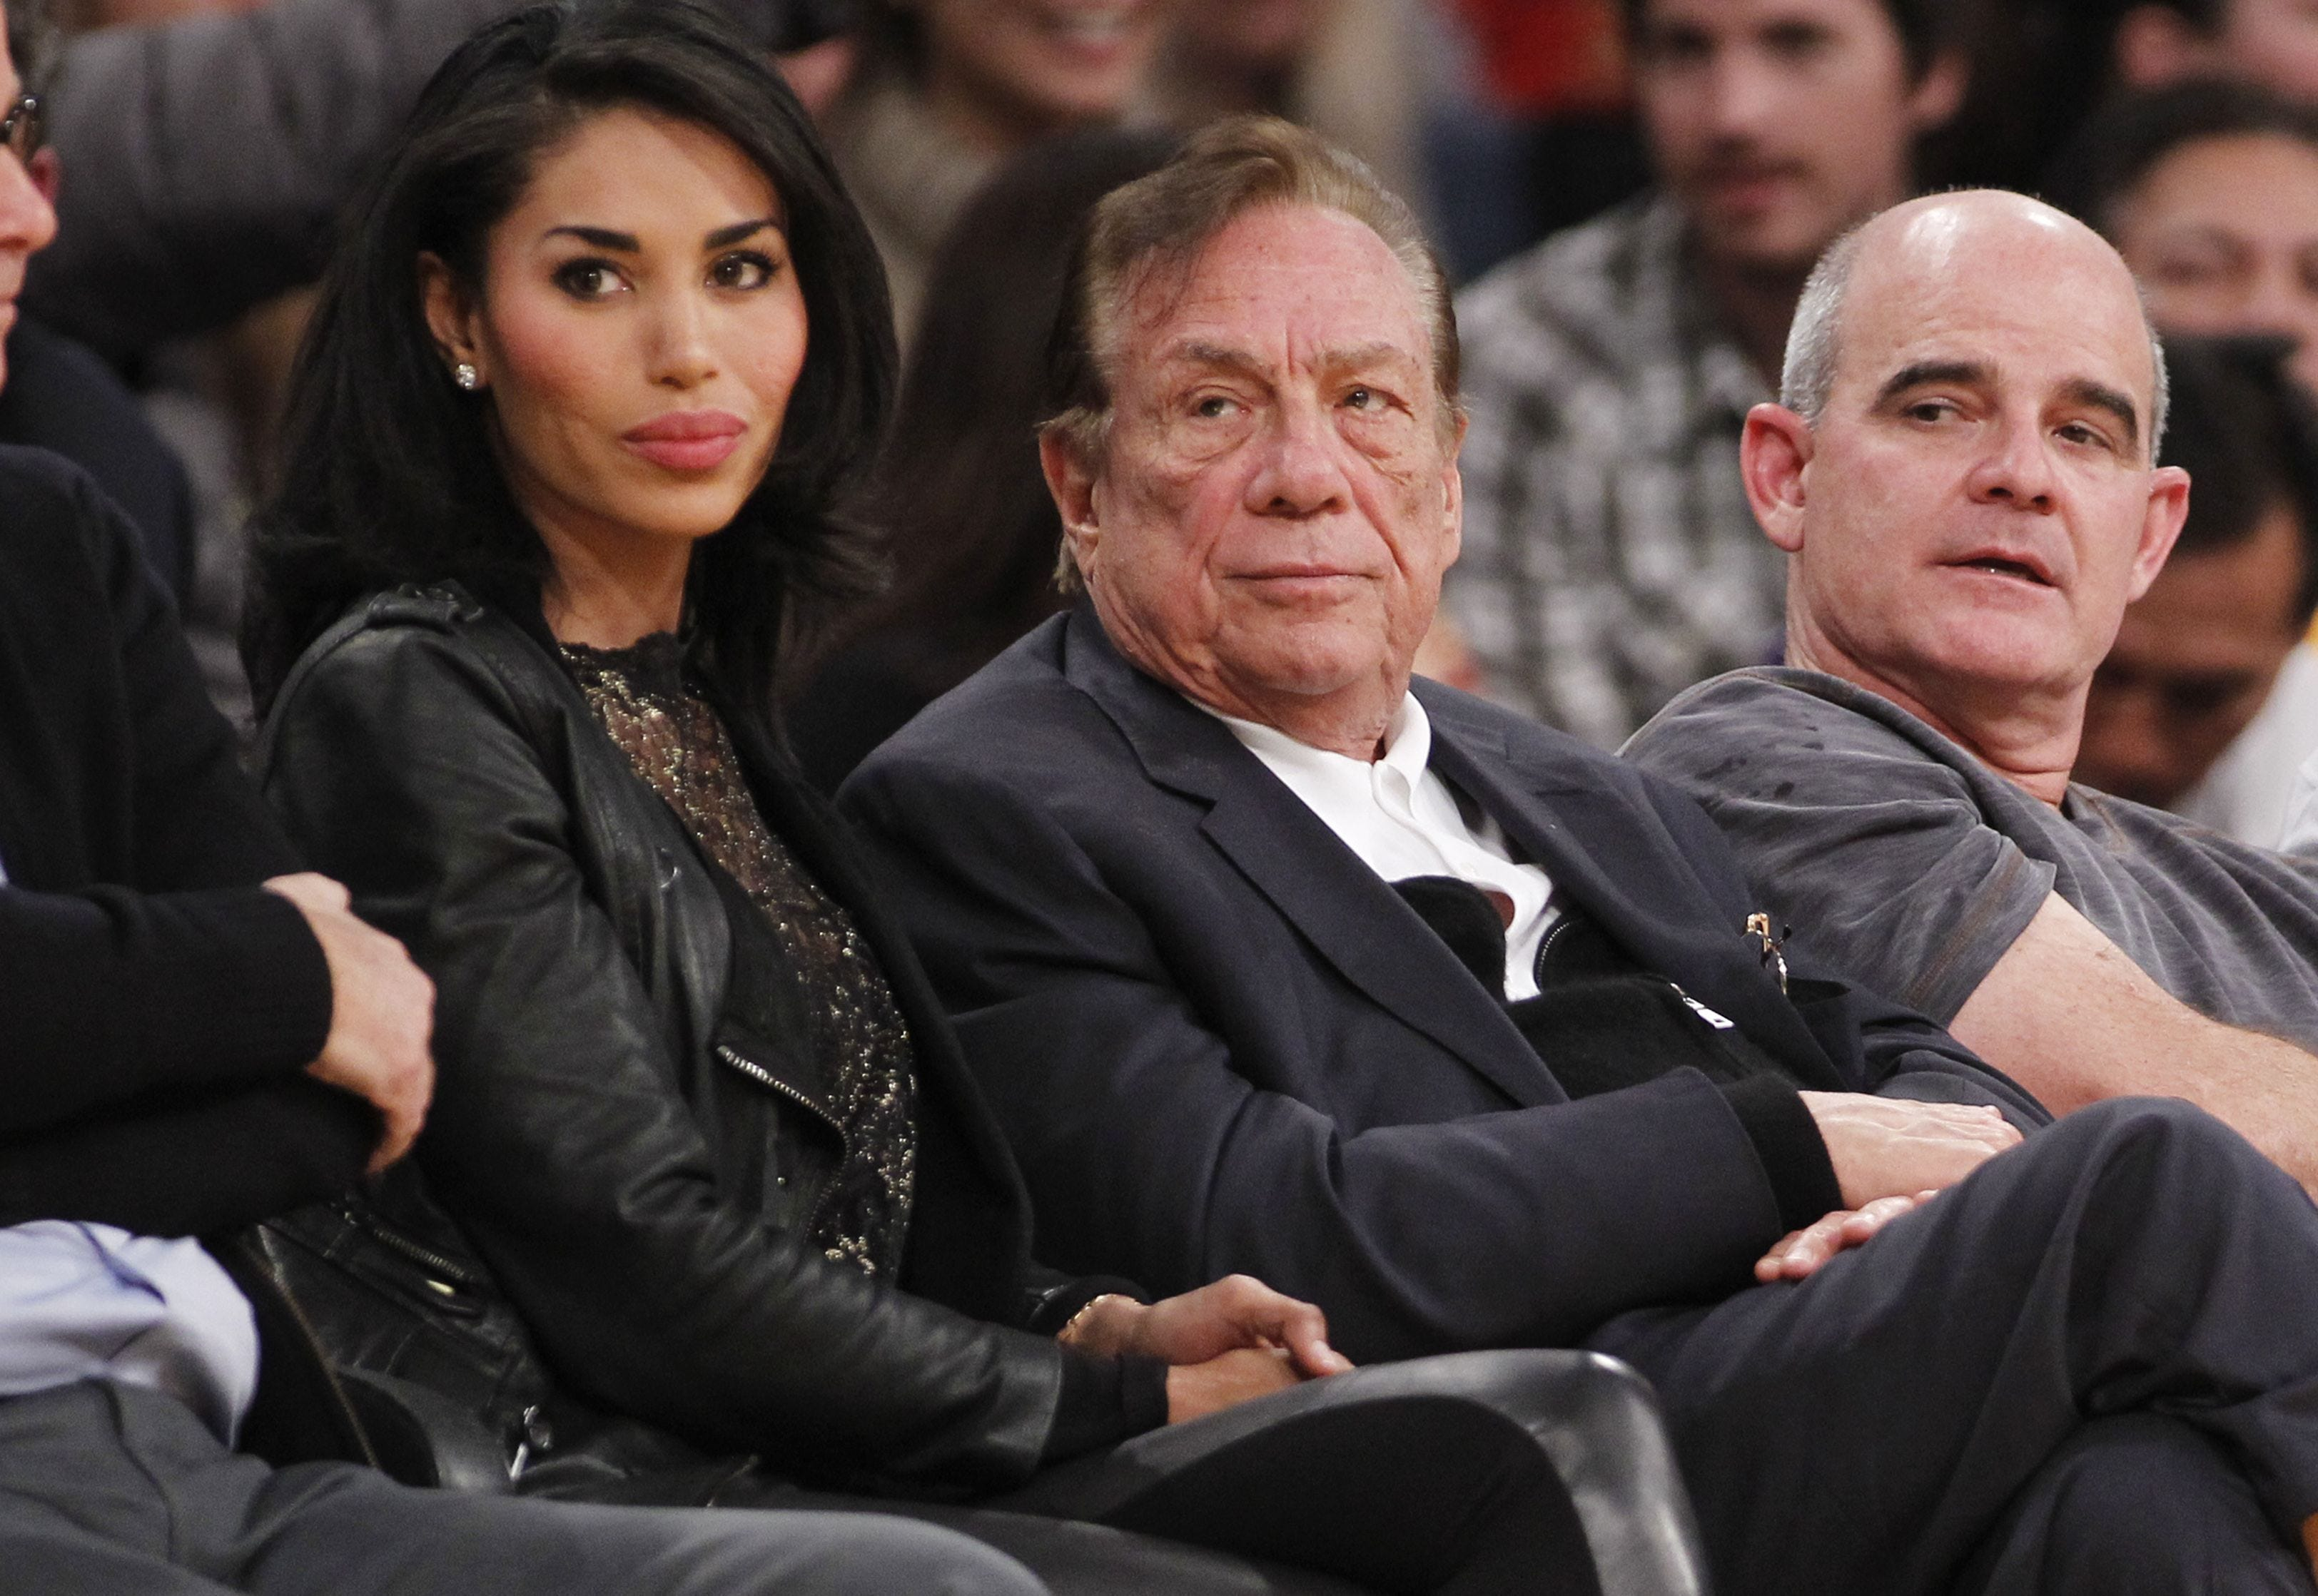 Sponsors Pulling Support Of Los Angeles Clippers